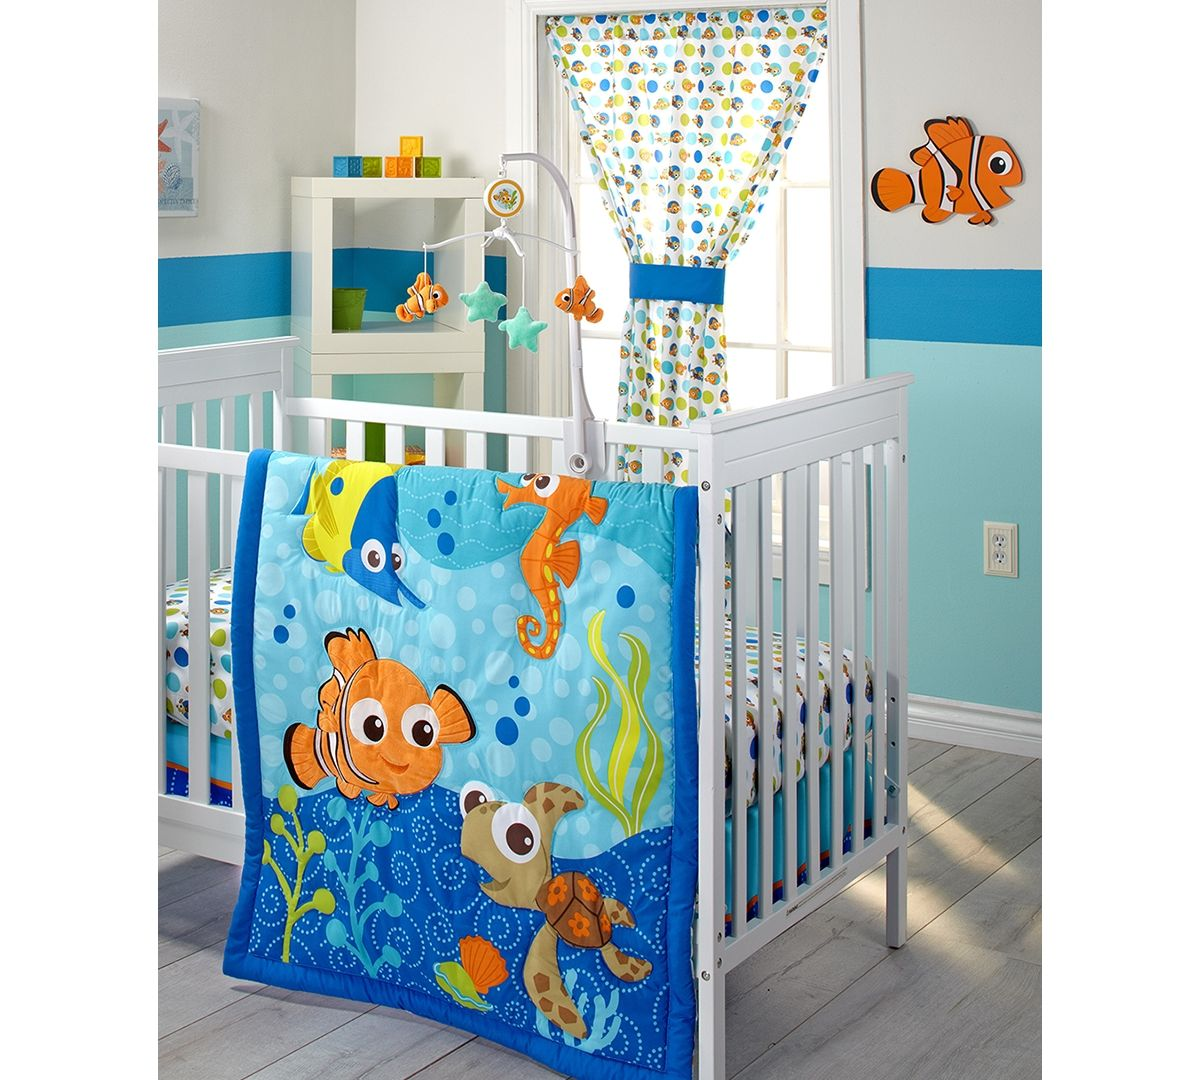 Disney Finding Nemo Baby Bedroom Collection & Reviews